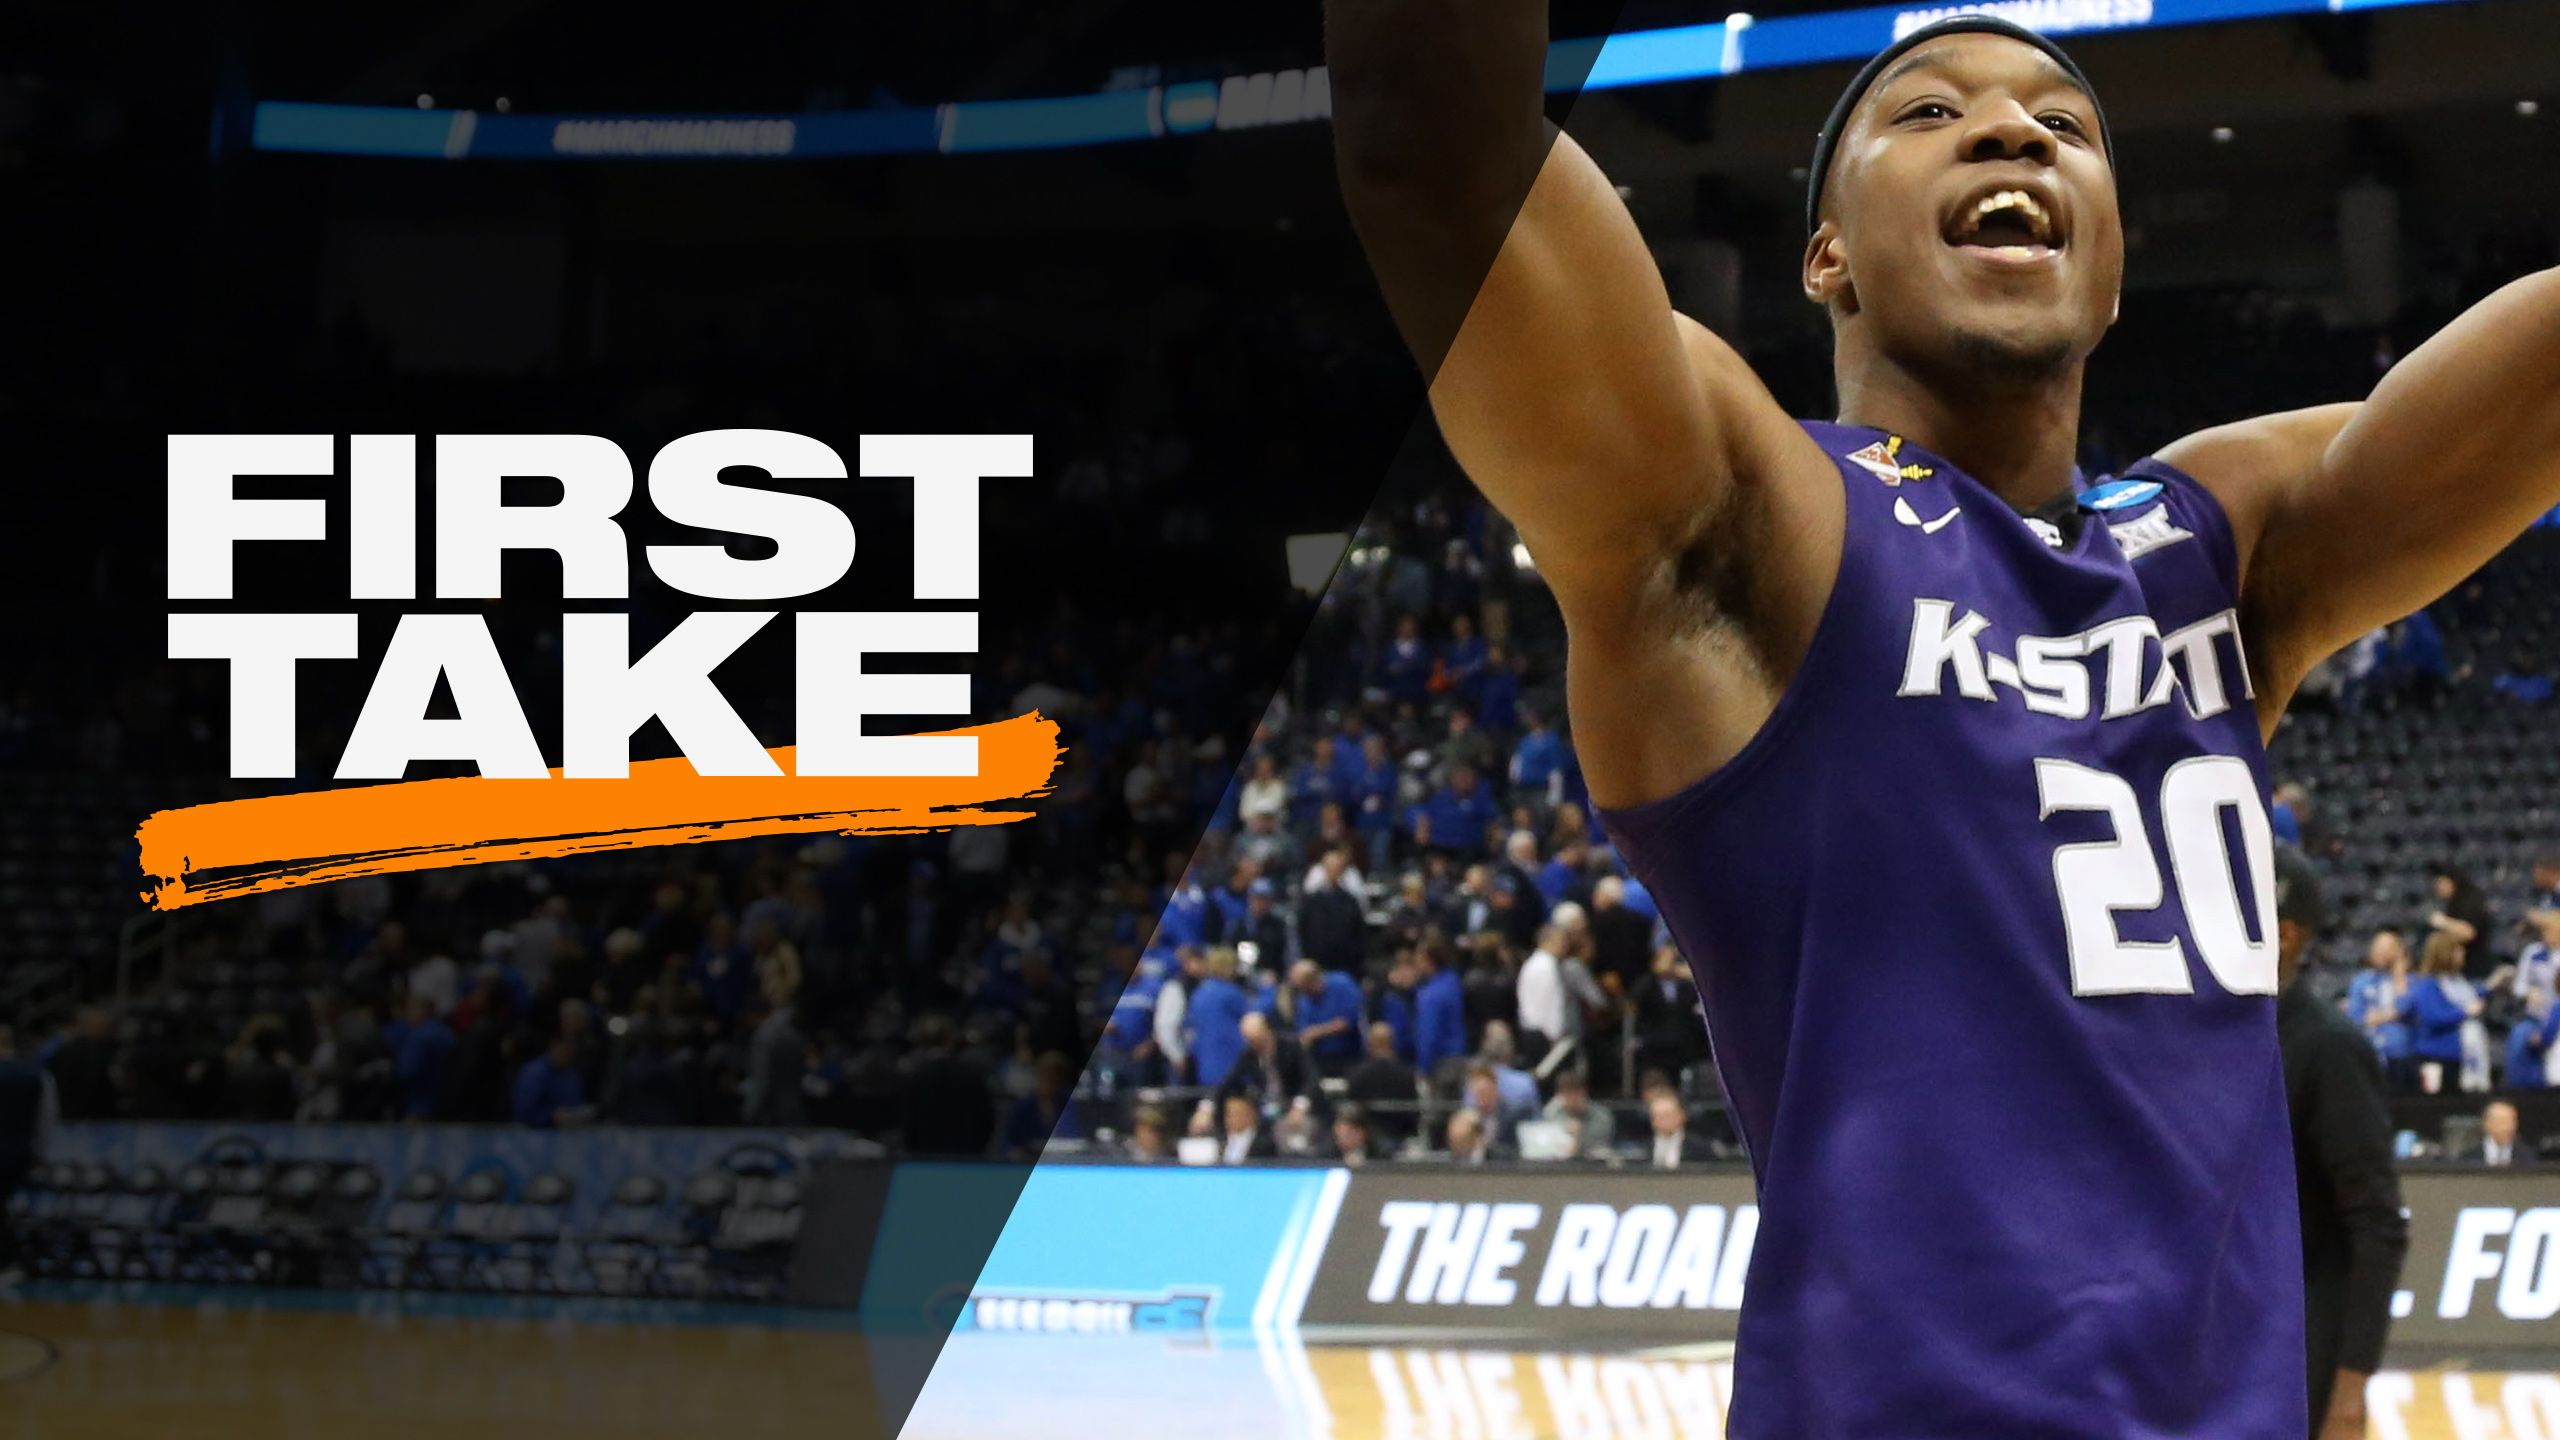 Fri, 3/23 - First Take